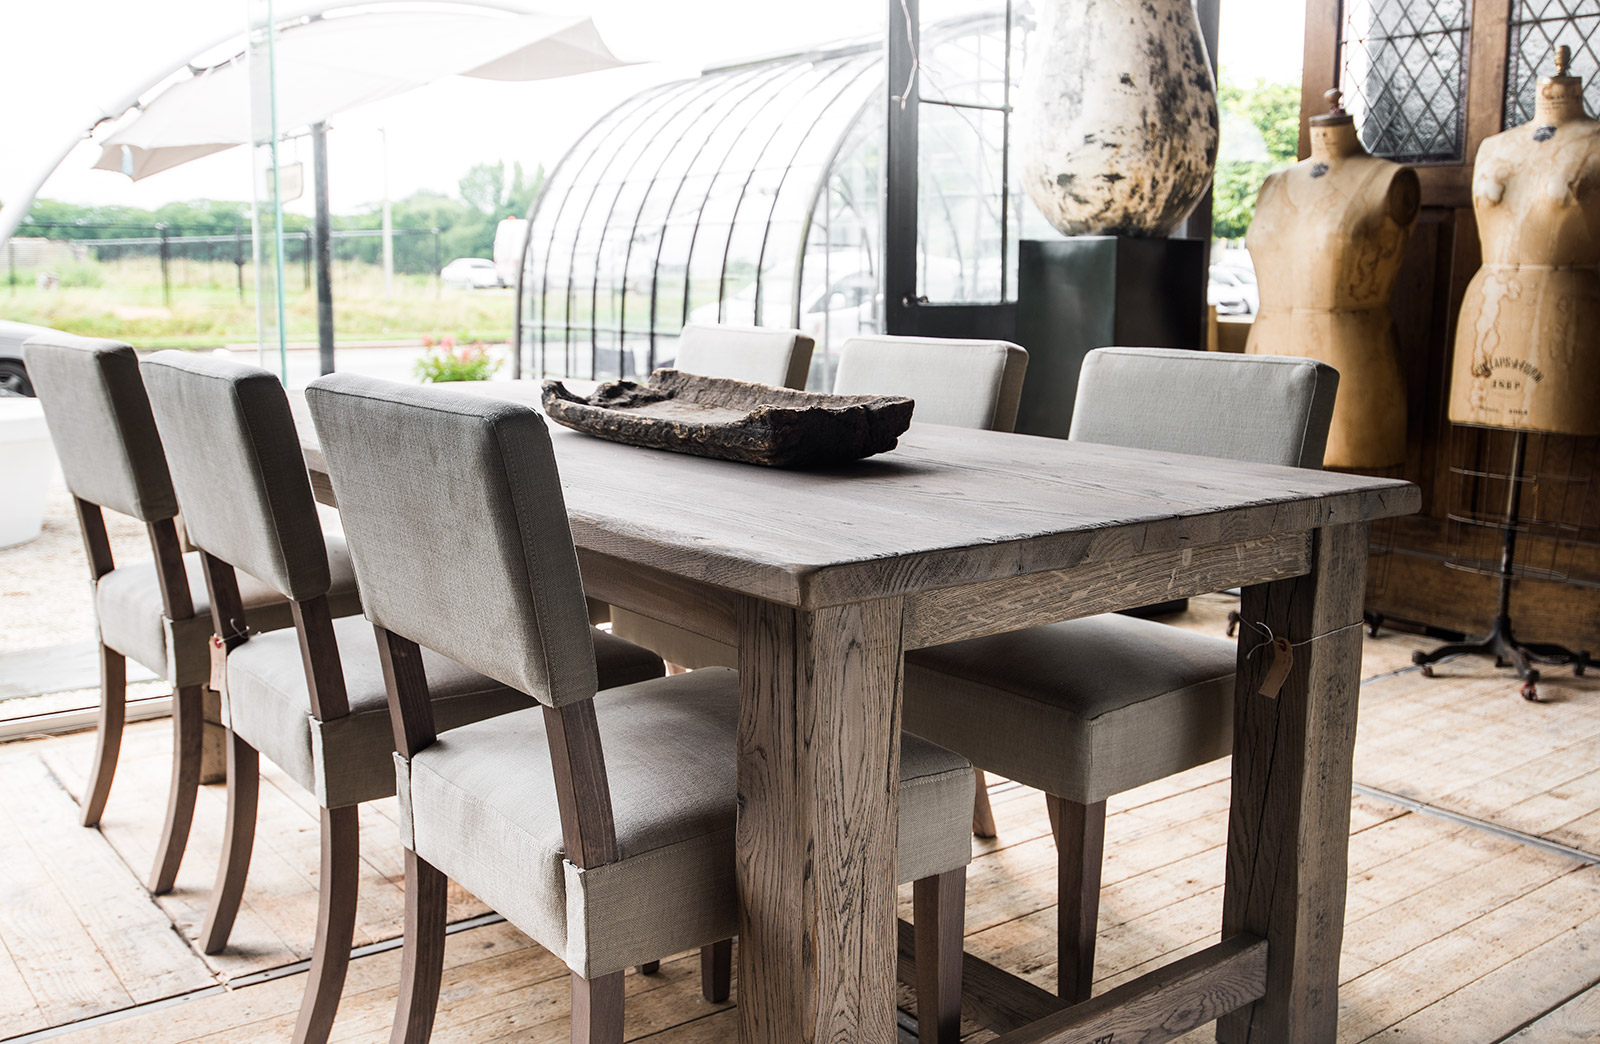 Wooden Table Made To Measure.jpg. Full resolution  photograph, nominally Width 1600 Height 1044 pixels, photograph with #816A4A.